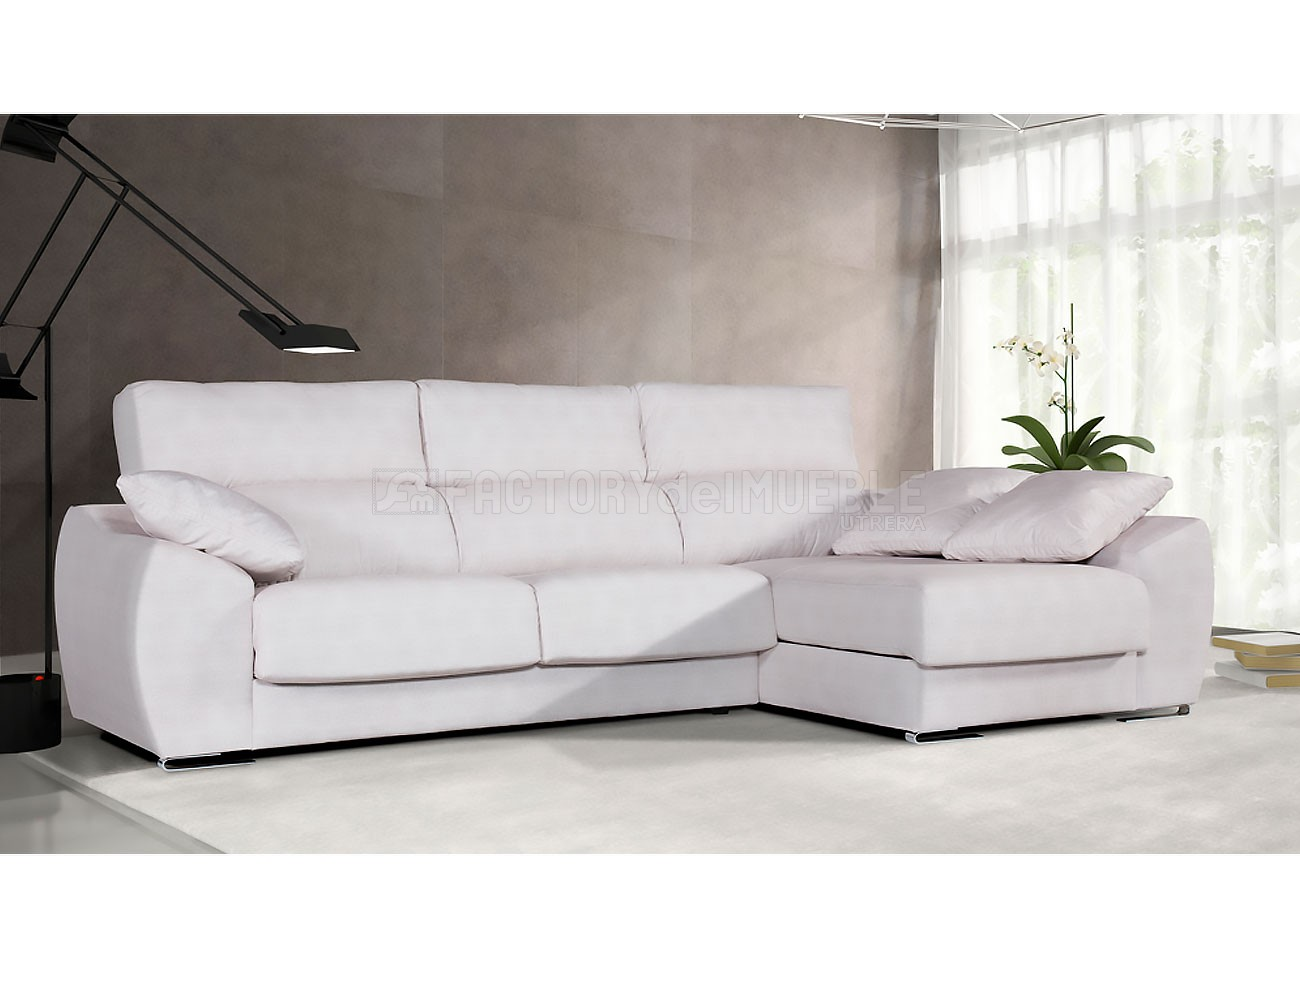 Sofa chaiselongue tosca4